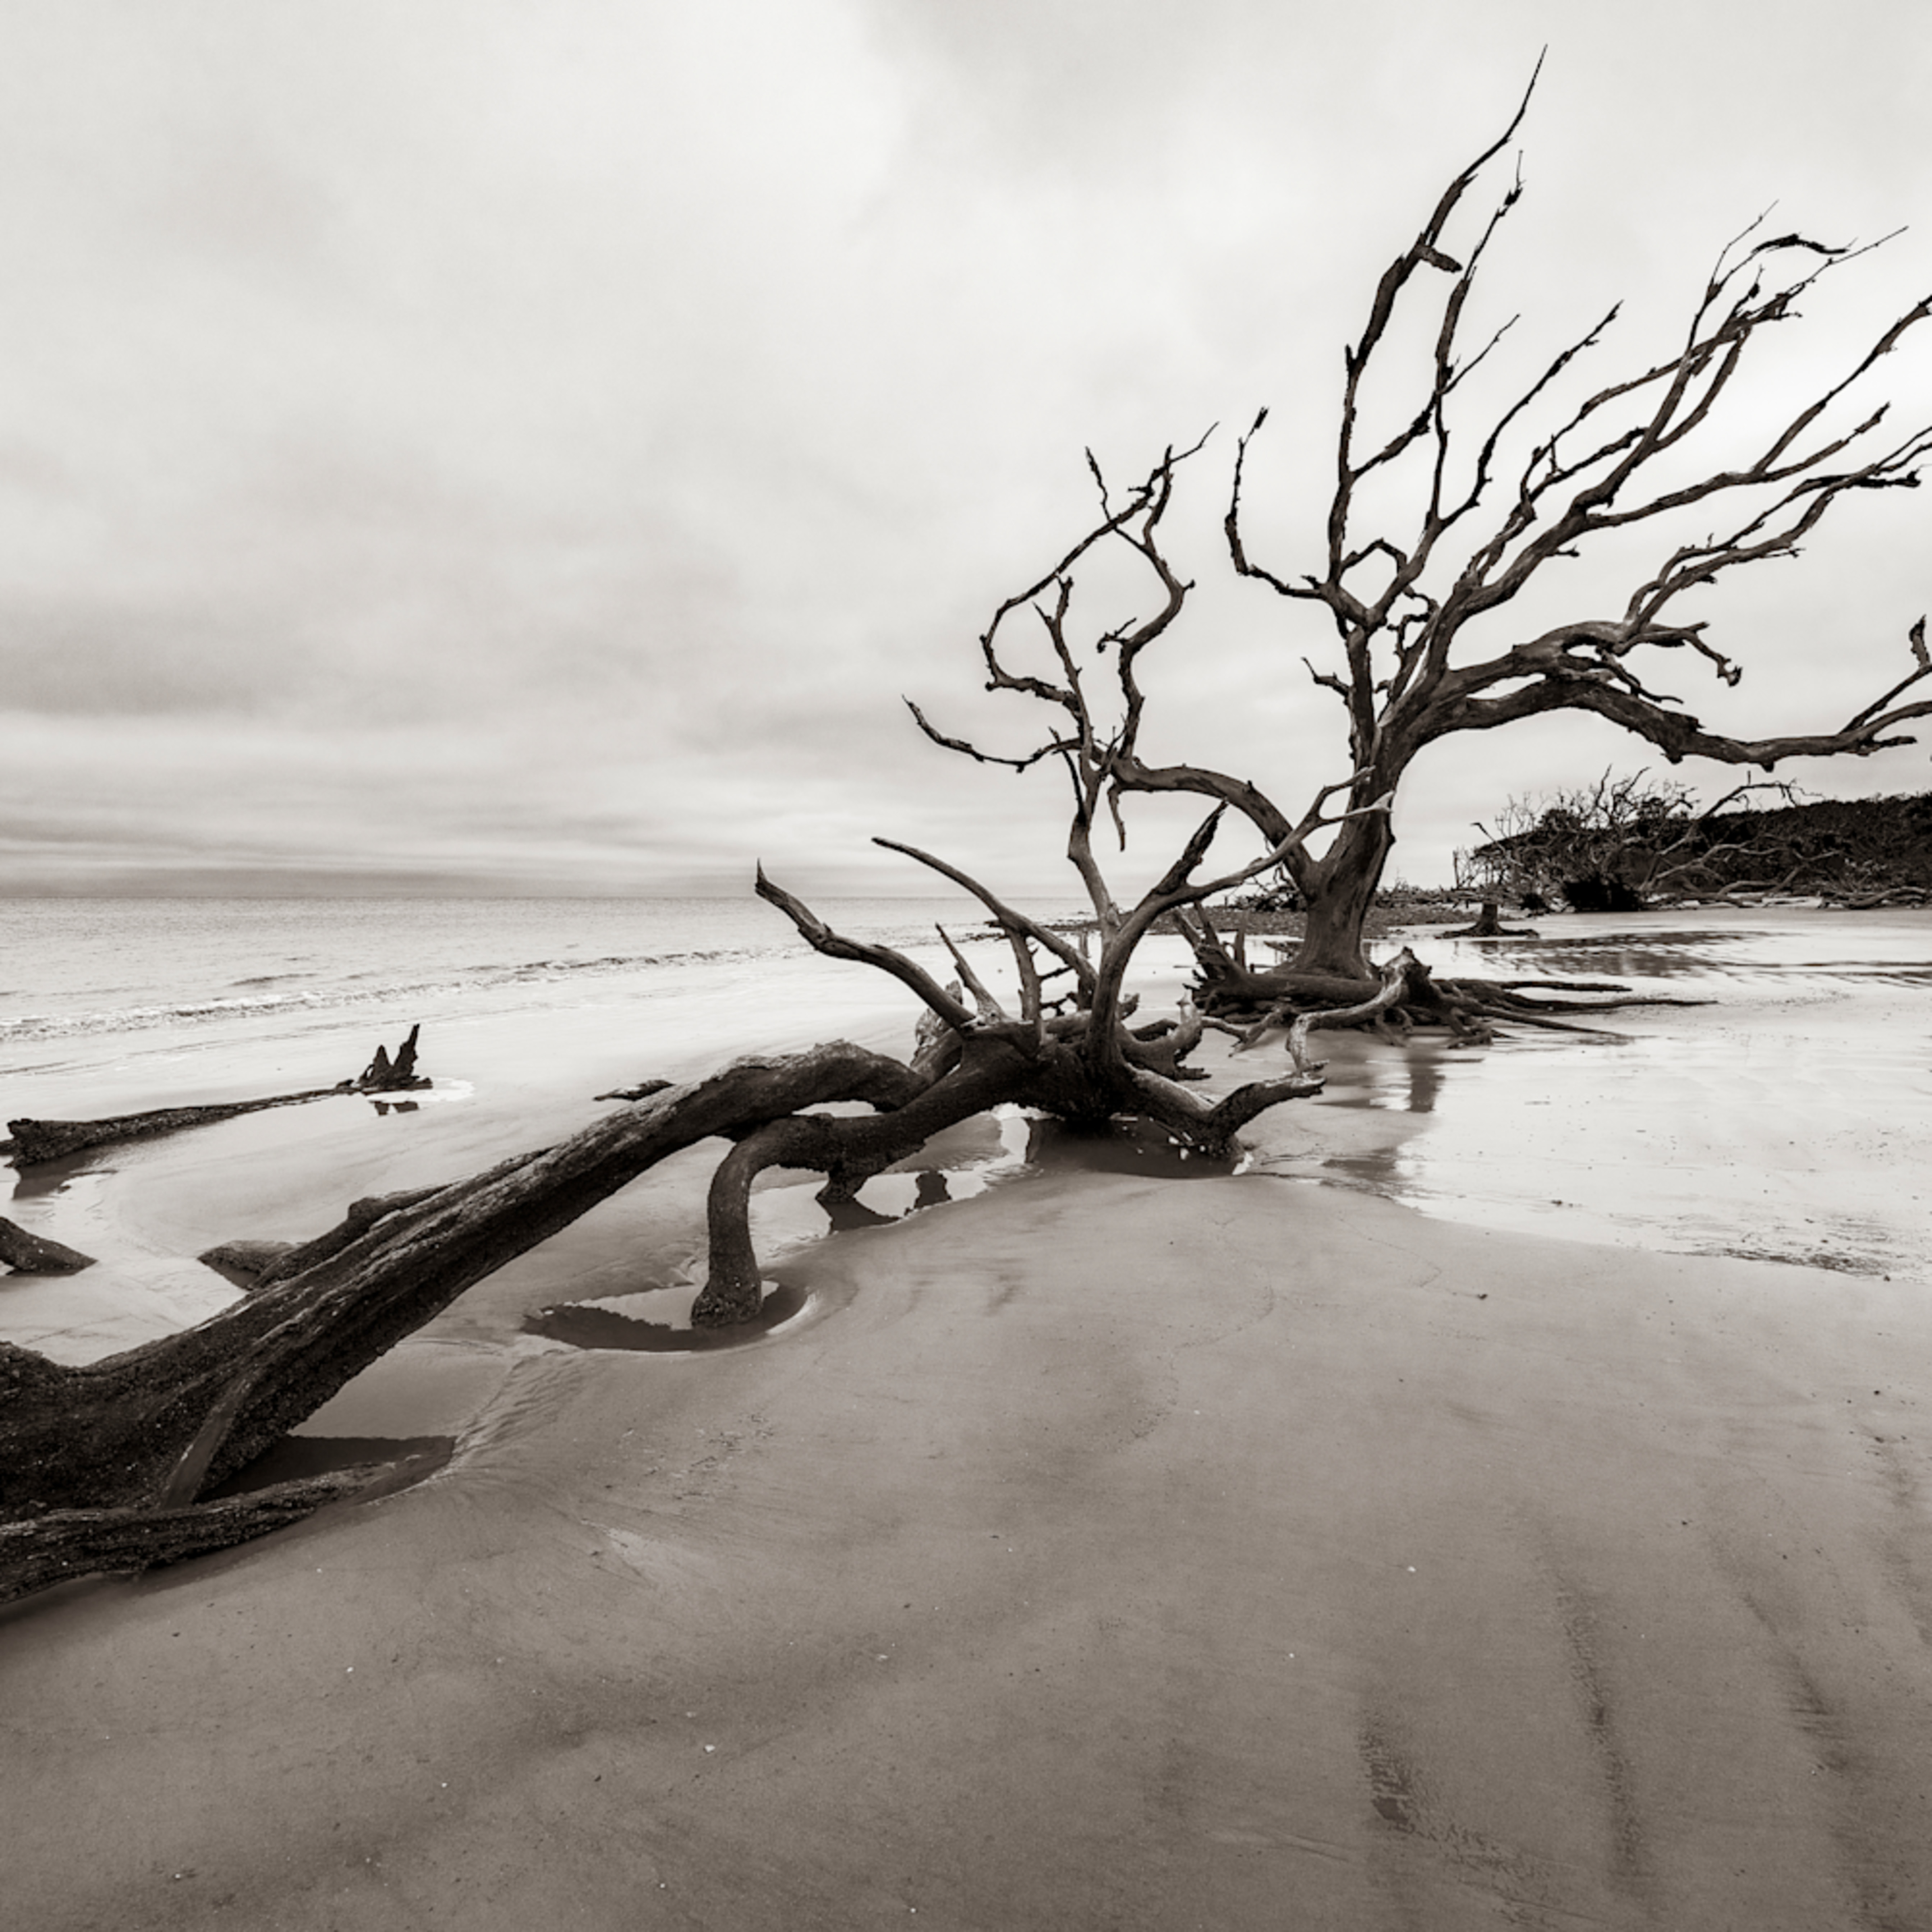 Andy crawford photography jekyll island boneyard ut3qhj